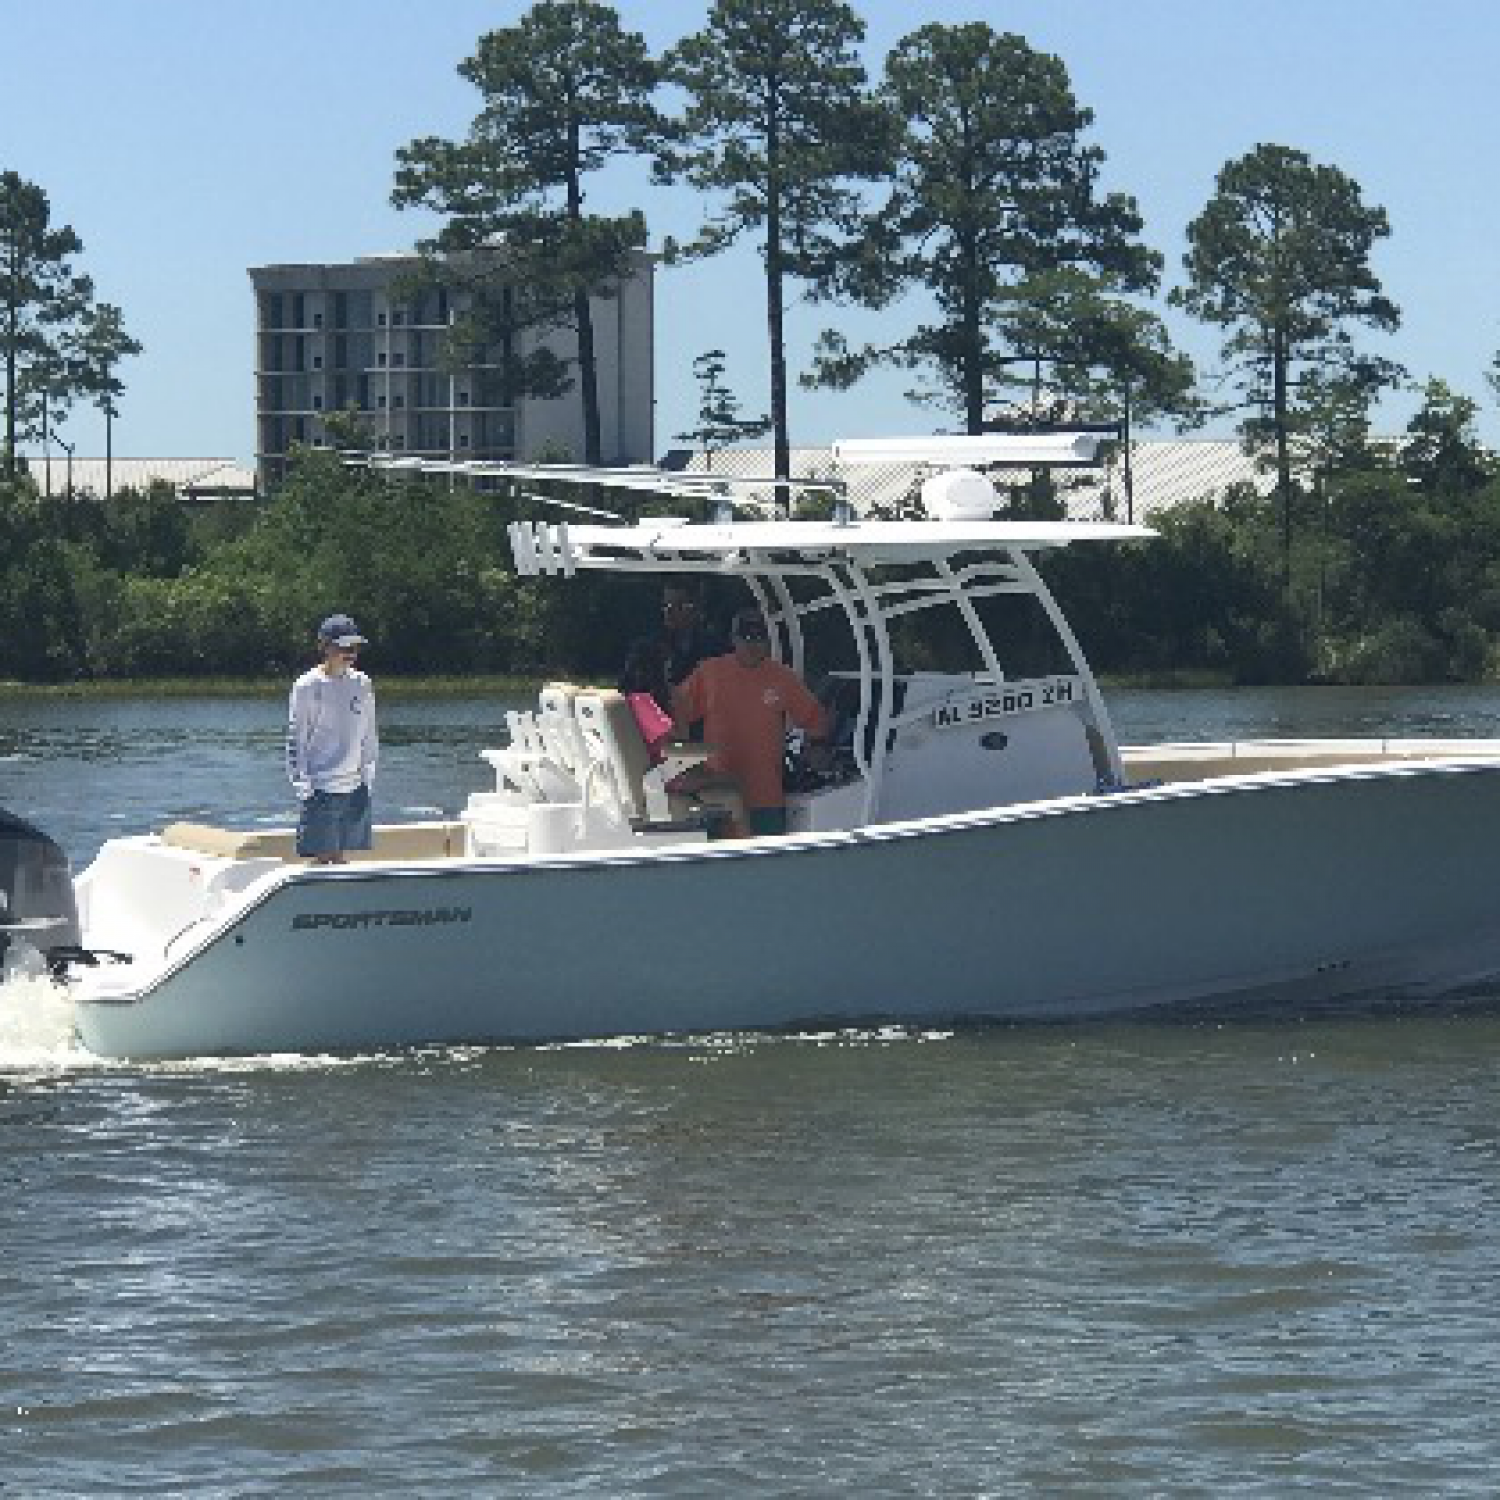 Title: Rich - On board their Sportsman Open 312 Center Console - Location: Orange Beach, Alabama. Participating in the Photo Contest #SportsmanJune2017